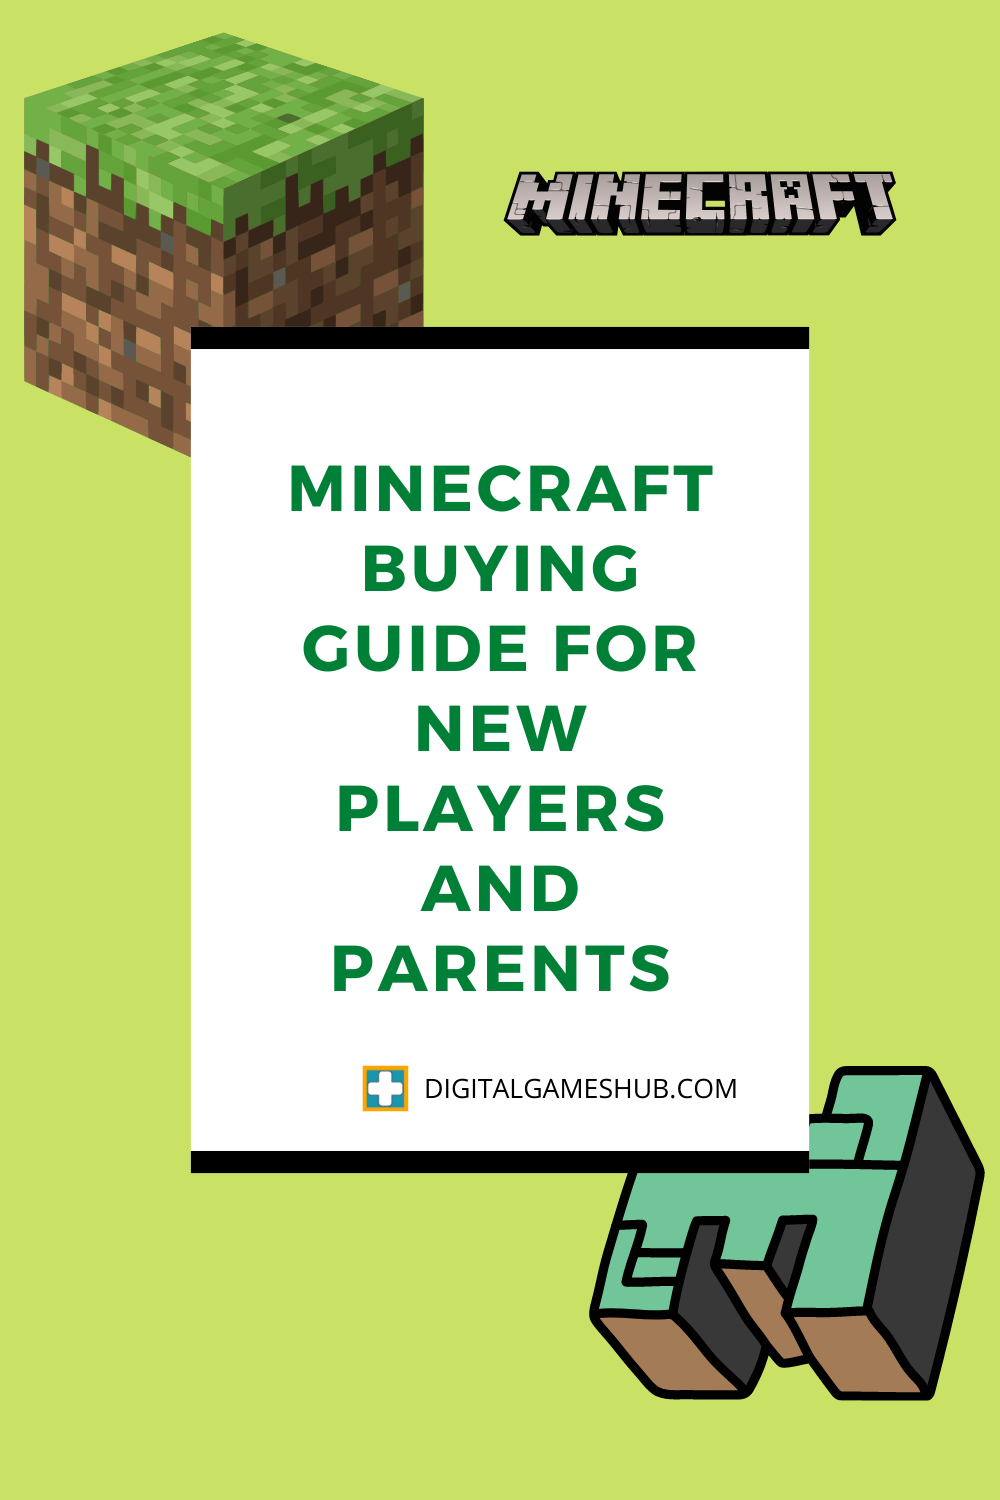 Minecraft Buying Guide for New Players and Parents Pinterest Image